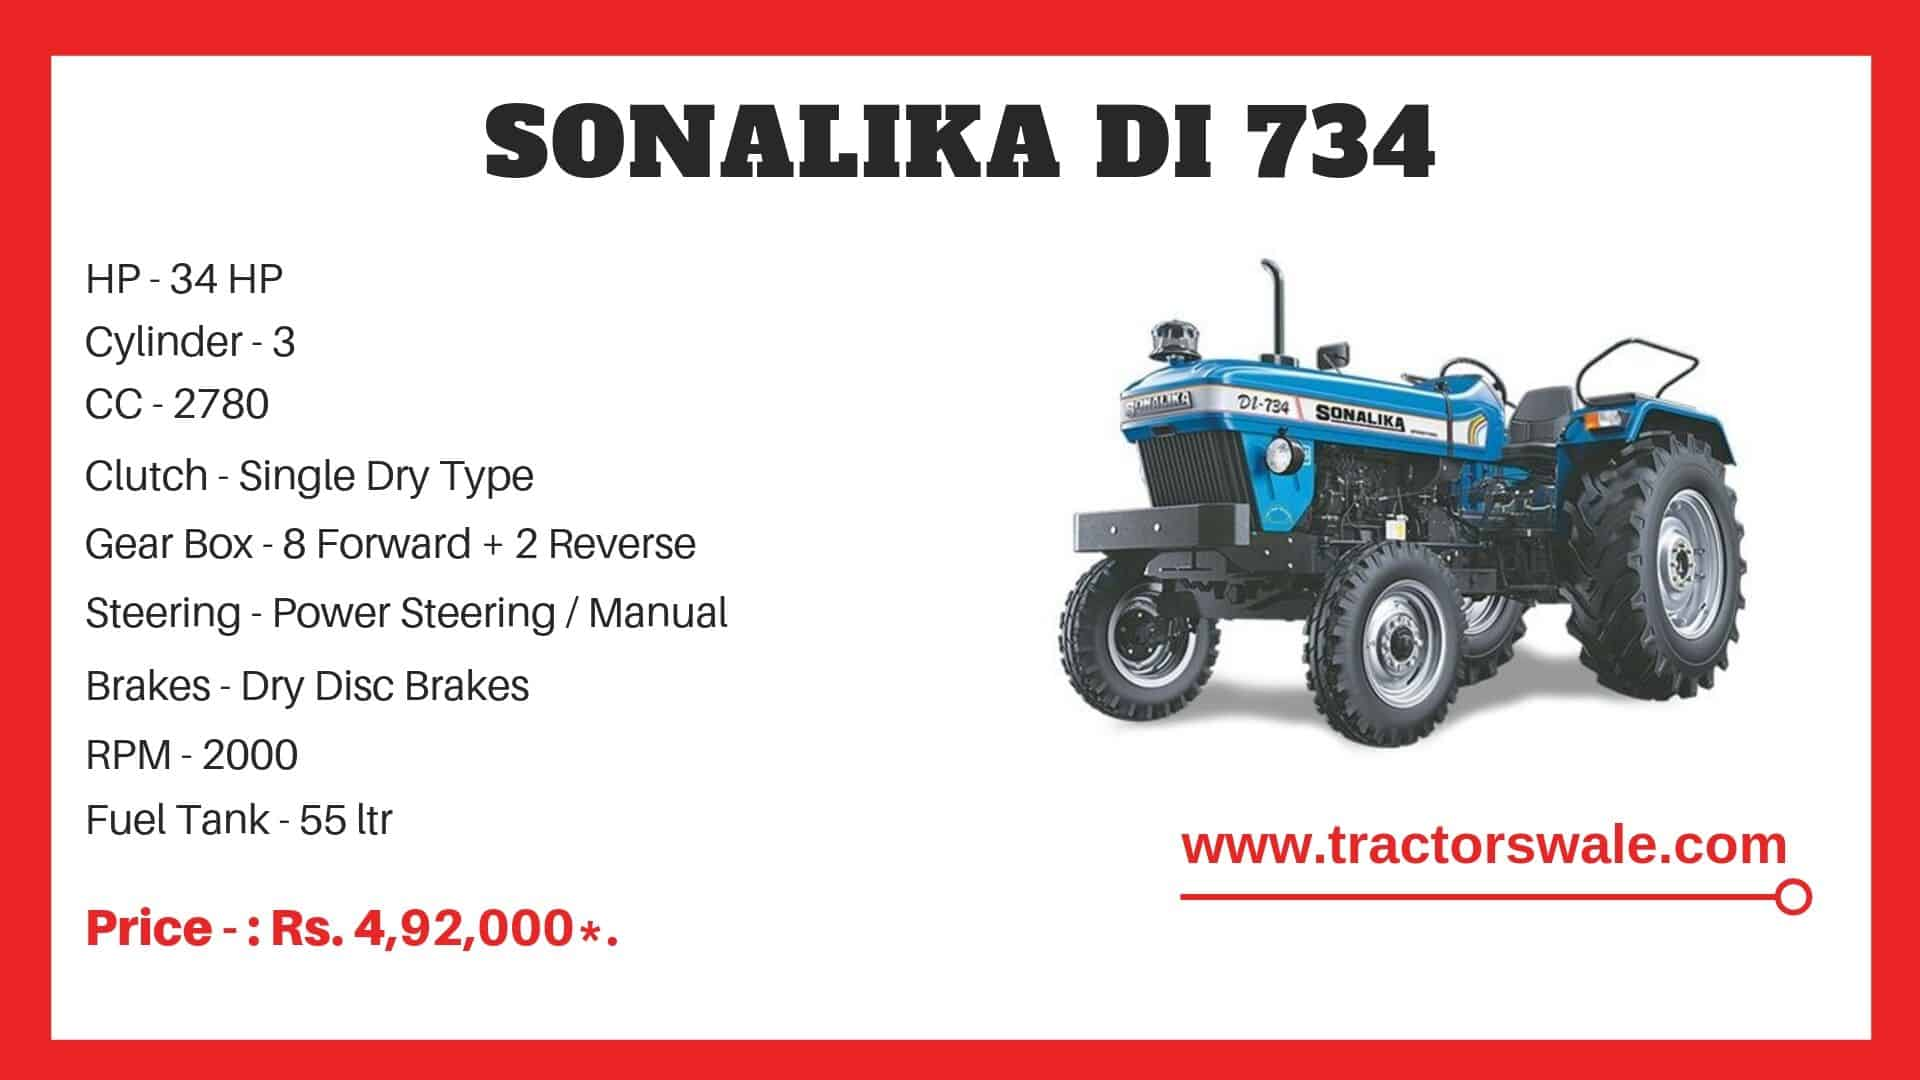 Sonalika DI 734 tractor specifications